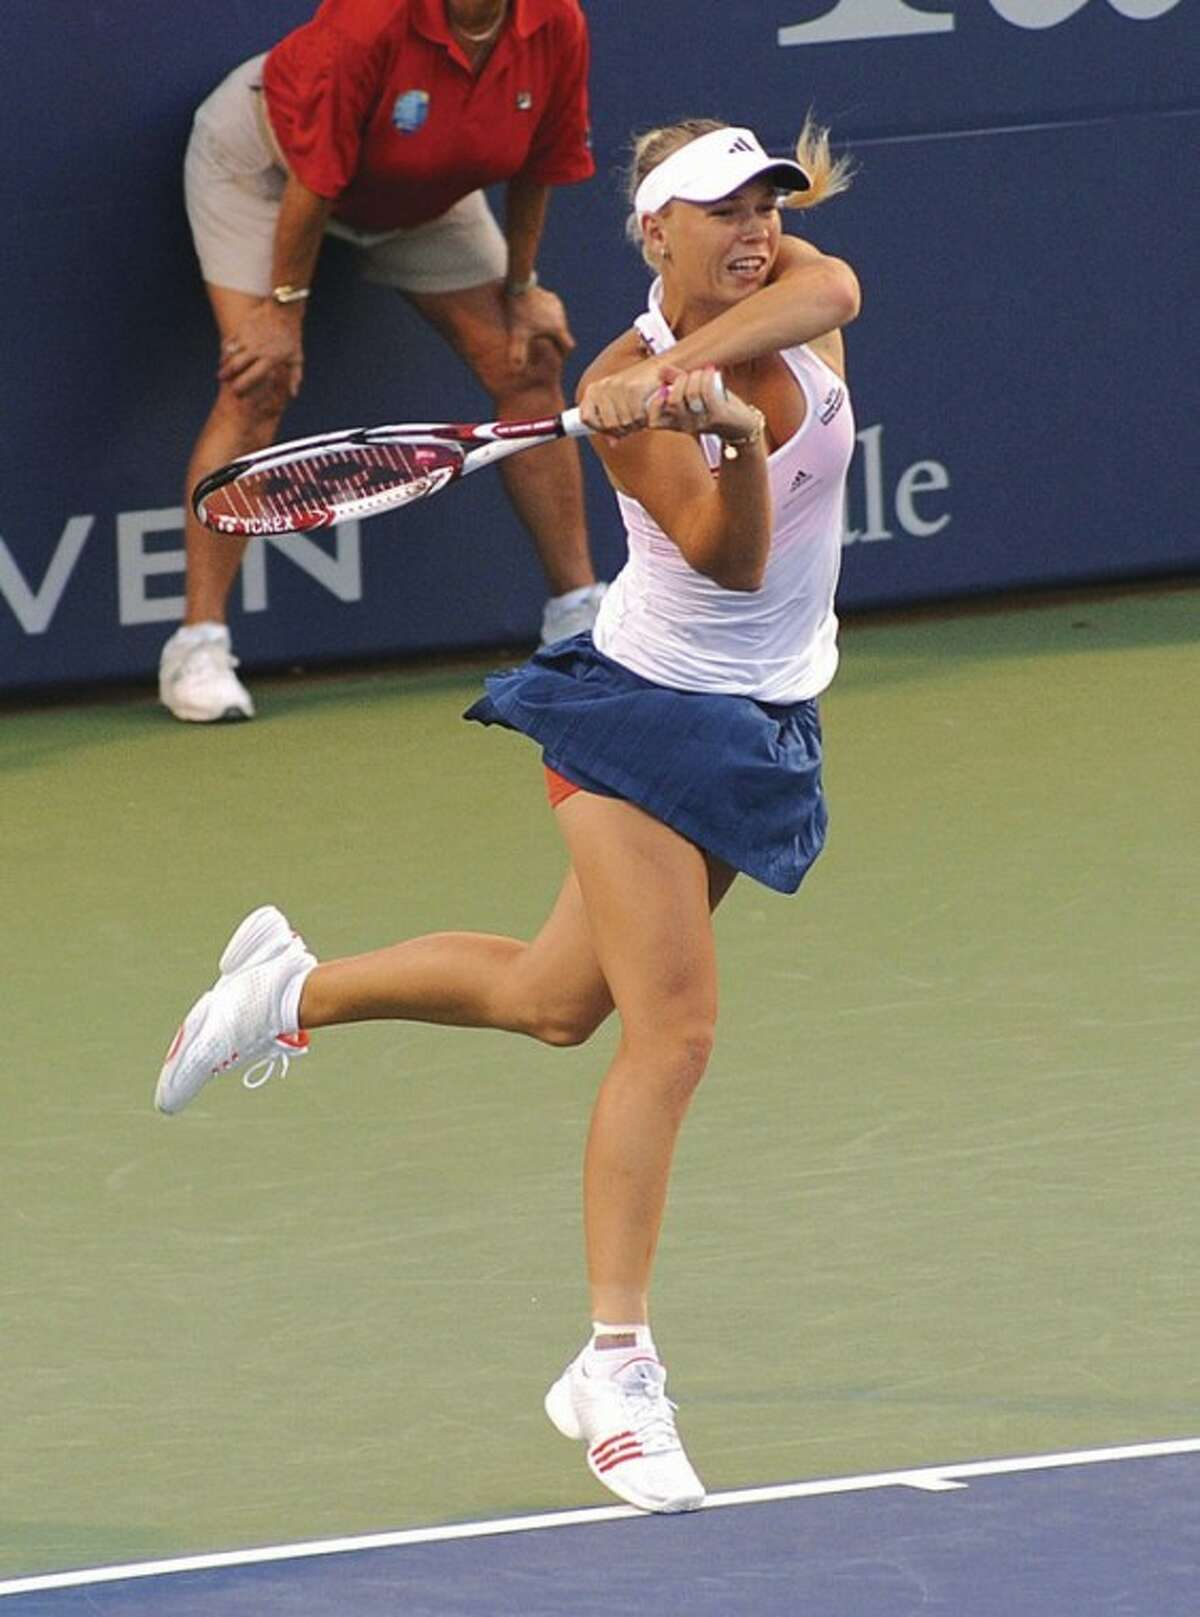 Hour photo/John Nash Top-seeded Caroline Wozniacki rifles a shot at Francesa Schiavone during Friday night's second semifinal at the New Haven Open. Wozniacki won, 7-6 (2) 6-3, and will face Czech qualifier Petra Cetkovska in today's championship match.